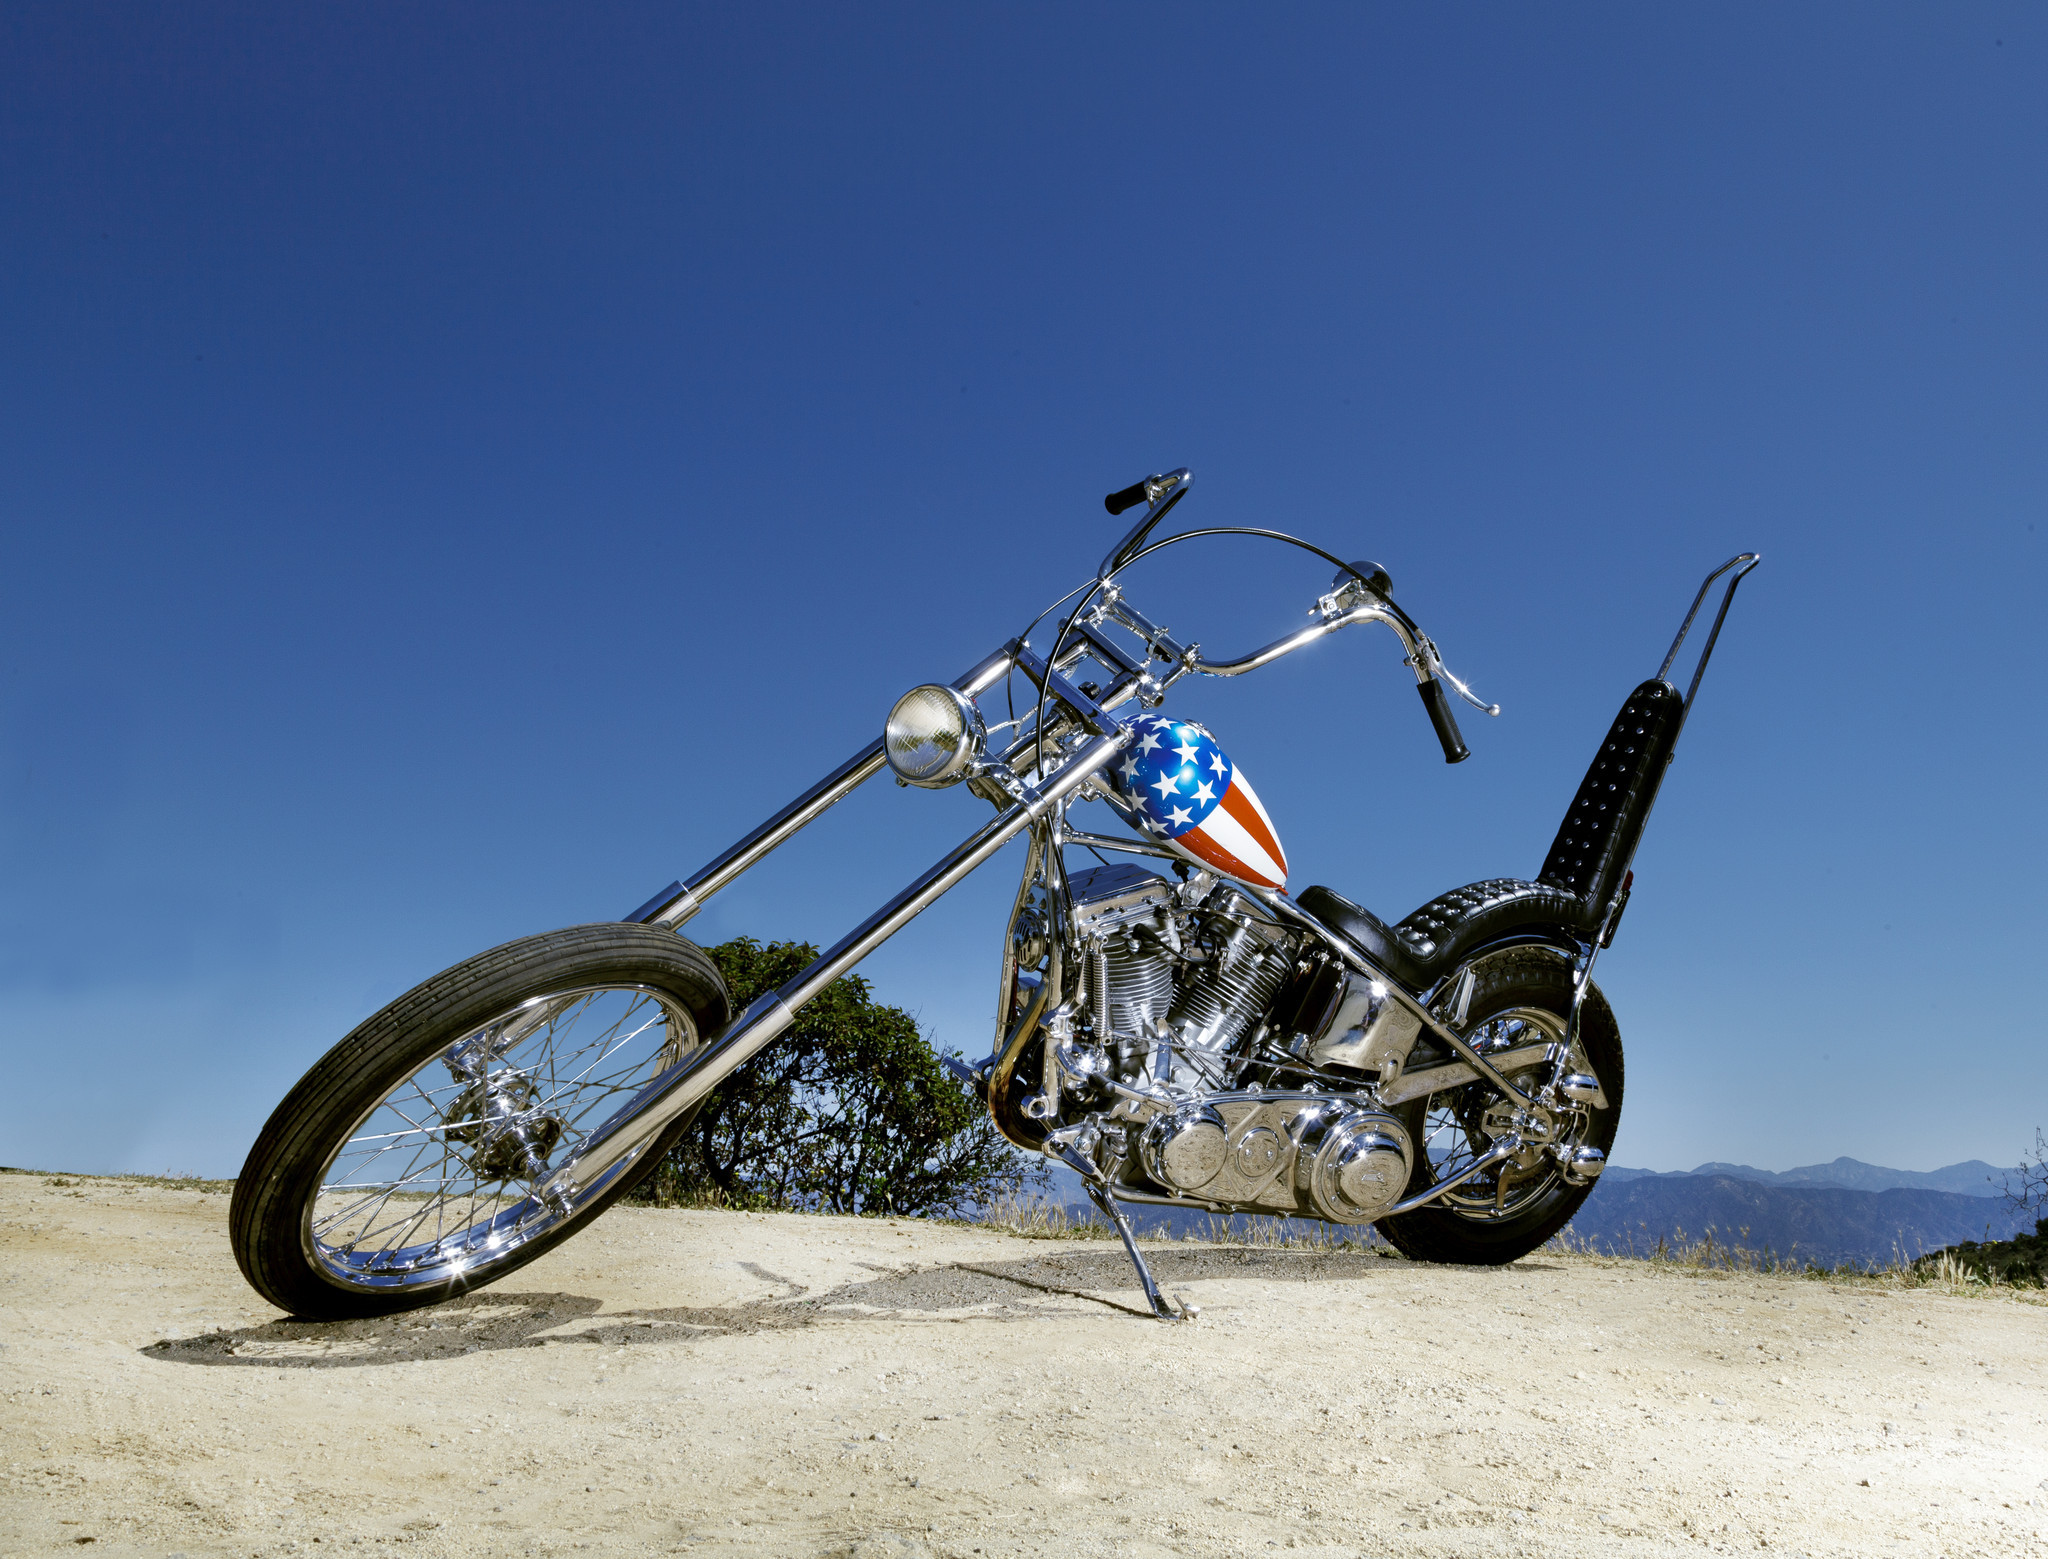 Easy Rider S Captain America Motorcycle Headed To Auction La